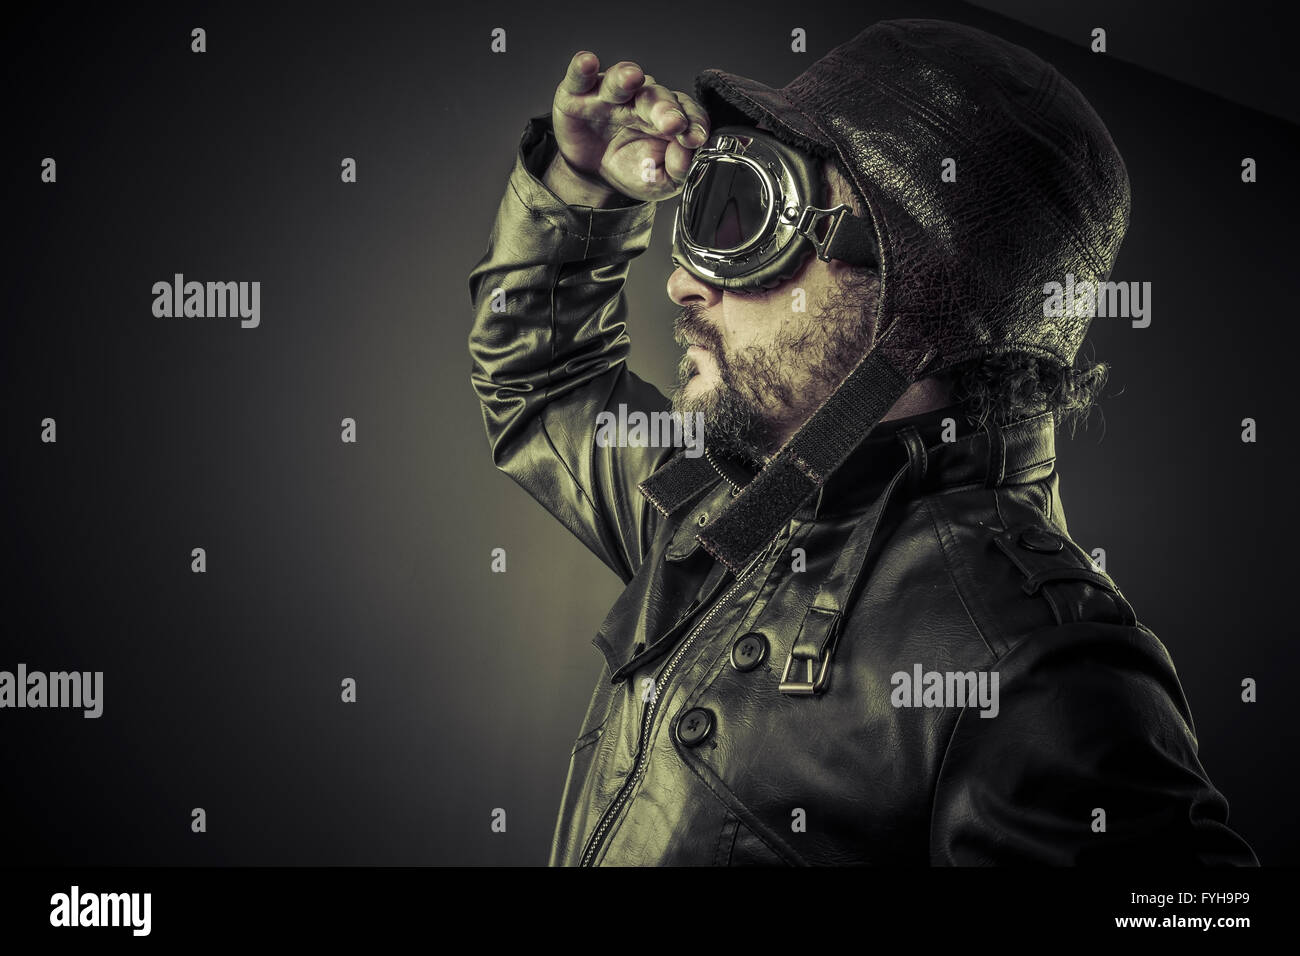 Steampunk concept, pilot vintage with big glasses, posing - Stock Image